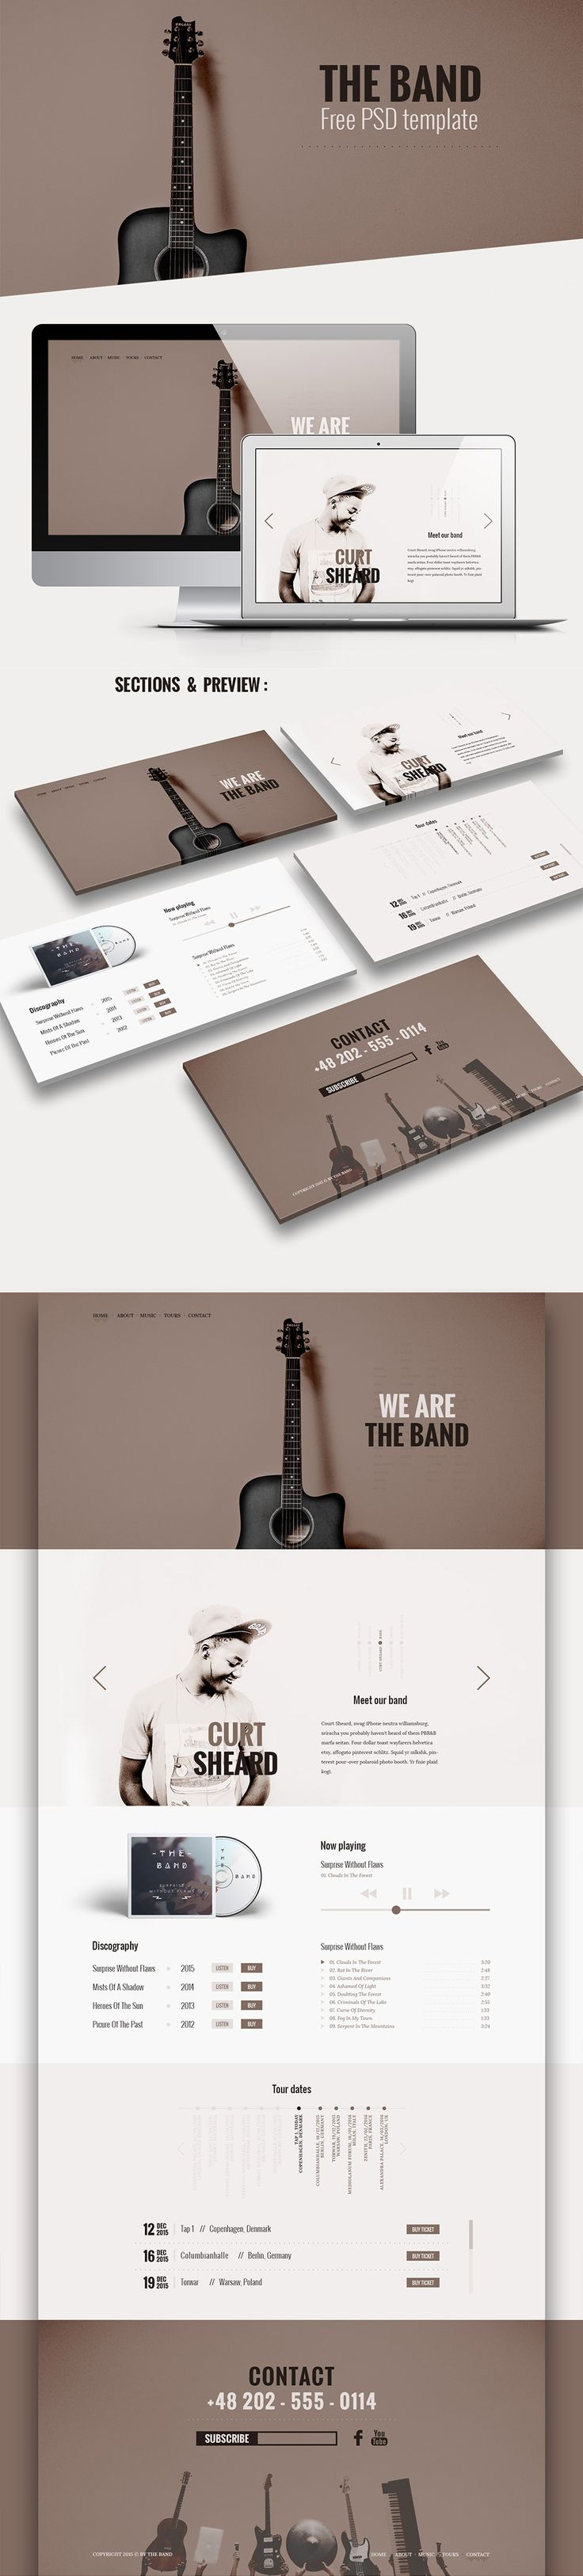 Download Music Band Website Template Free PSD. This is a clean and trendy one page landing page template specially made for bands, musicians or other music related websites Than this high quality band music website template PSD will be suitable for your website. Music Band Website Template PSD is absolutely free for personal or commercial use. Hope you like it. Enjoy!